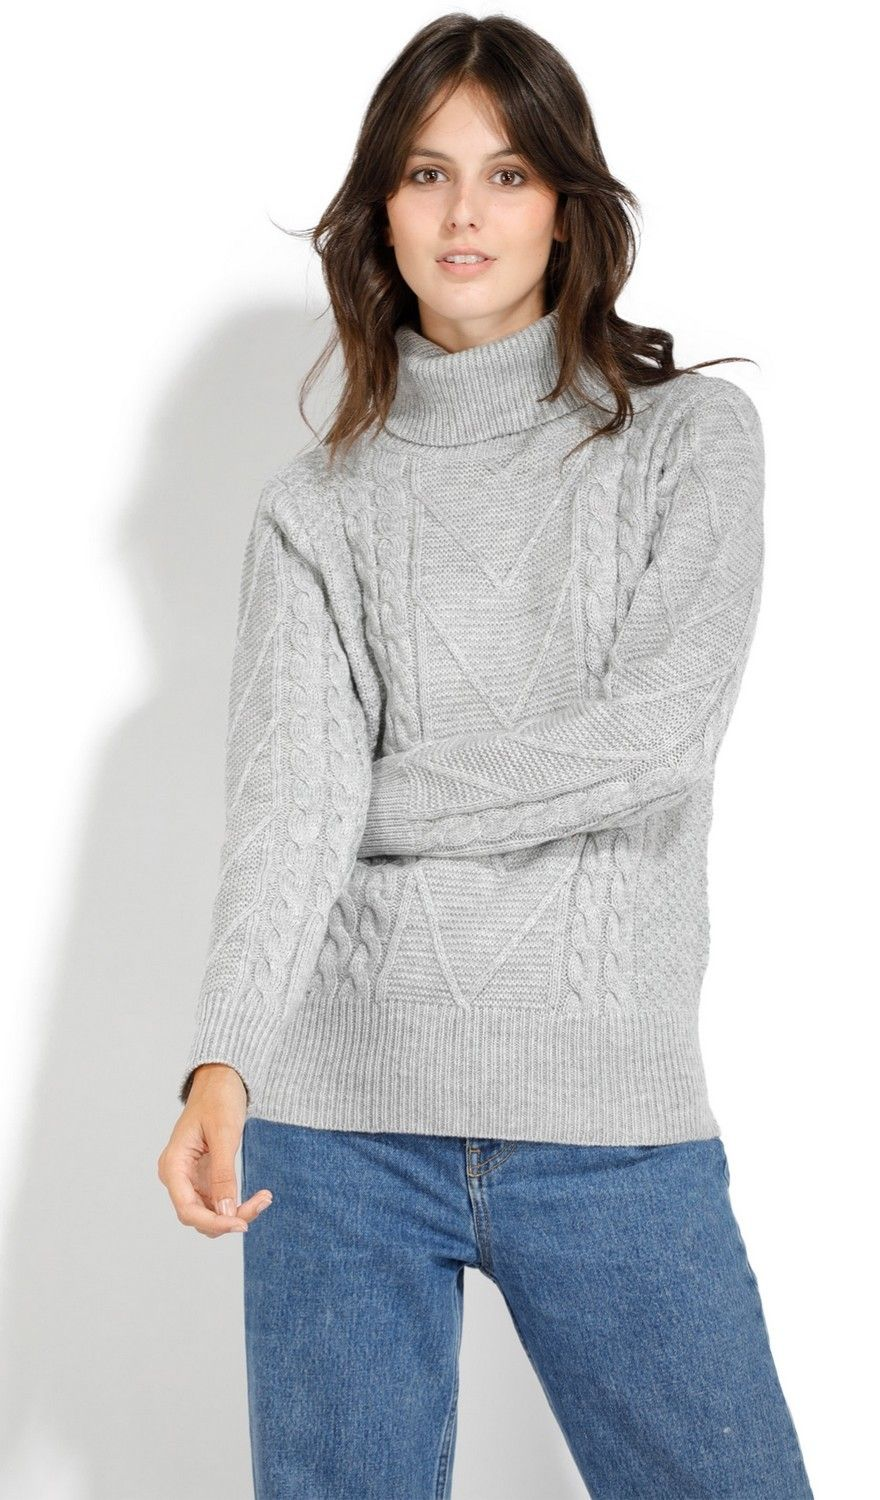 Assuili Roll Neck Twisted Yarn Sweater in Grey